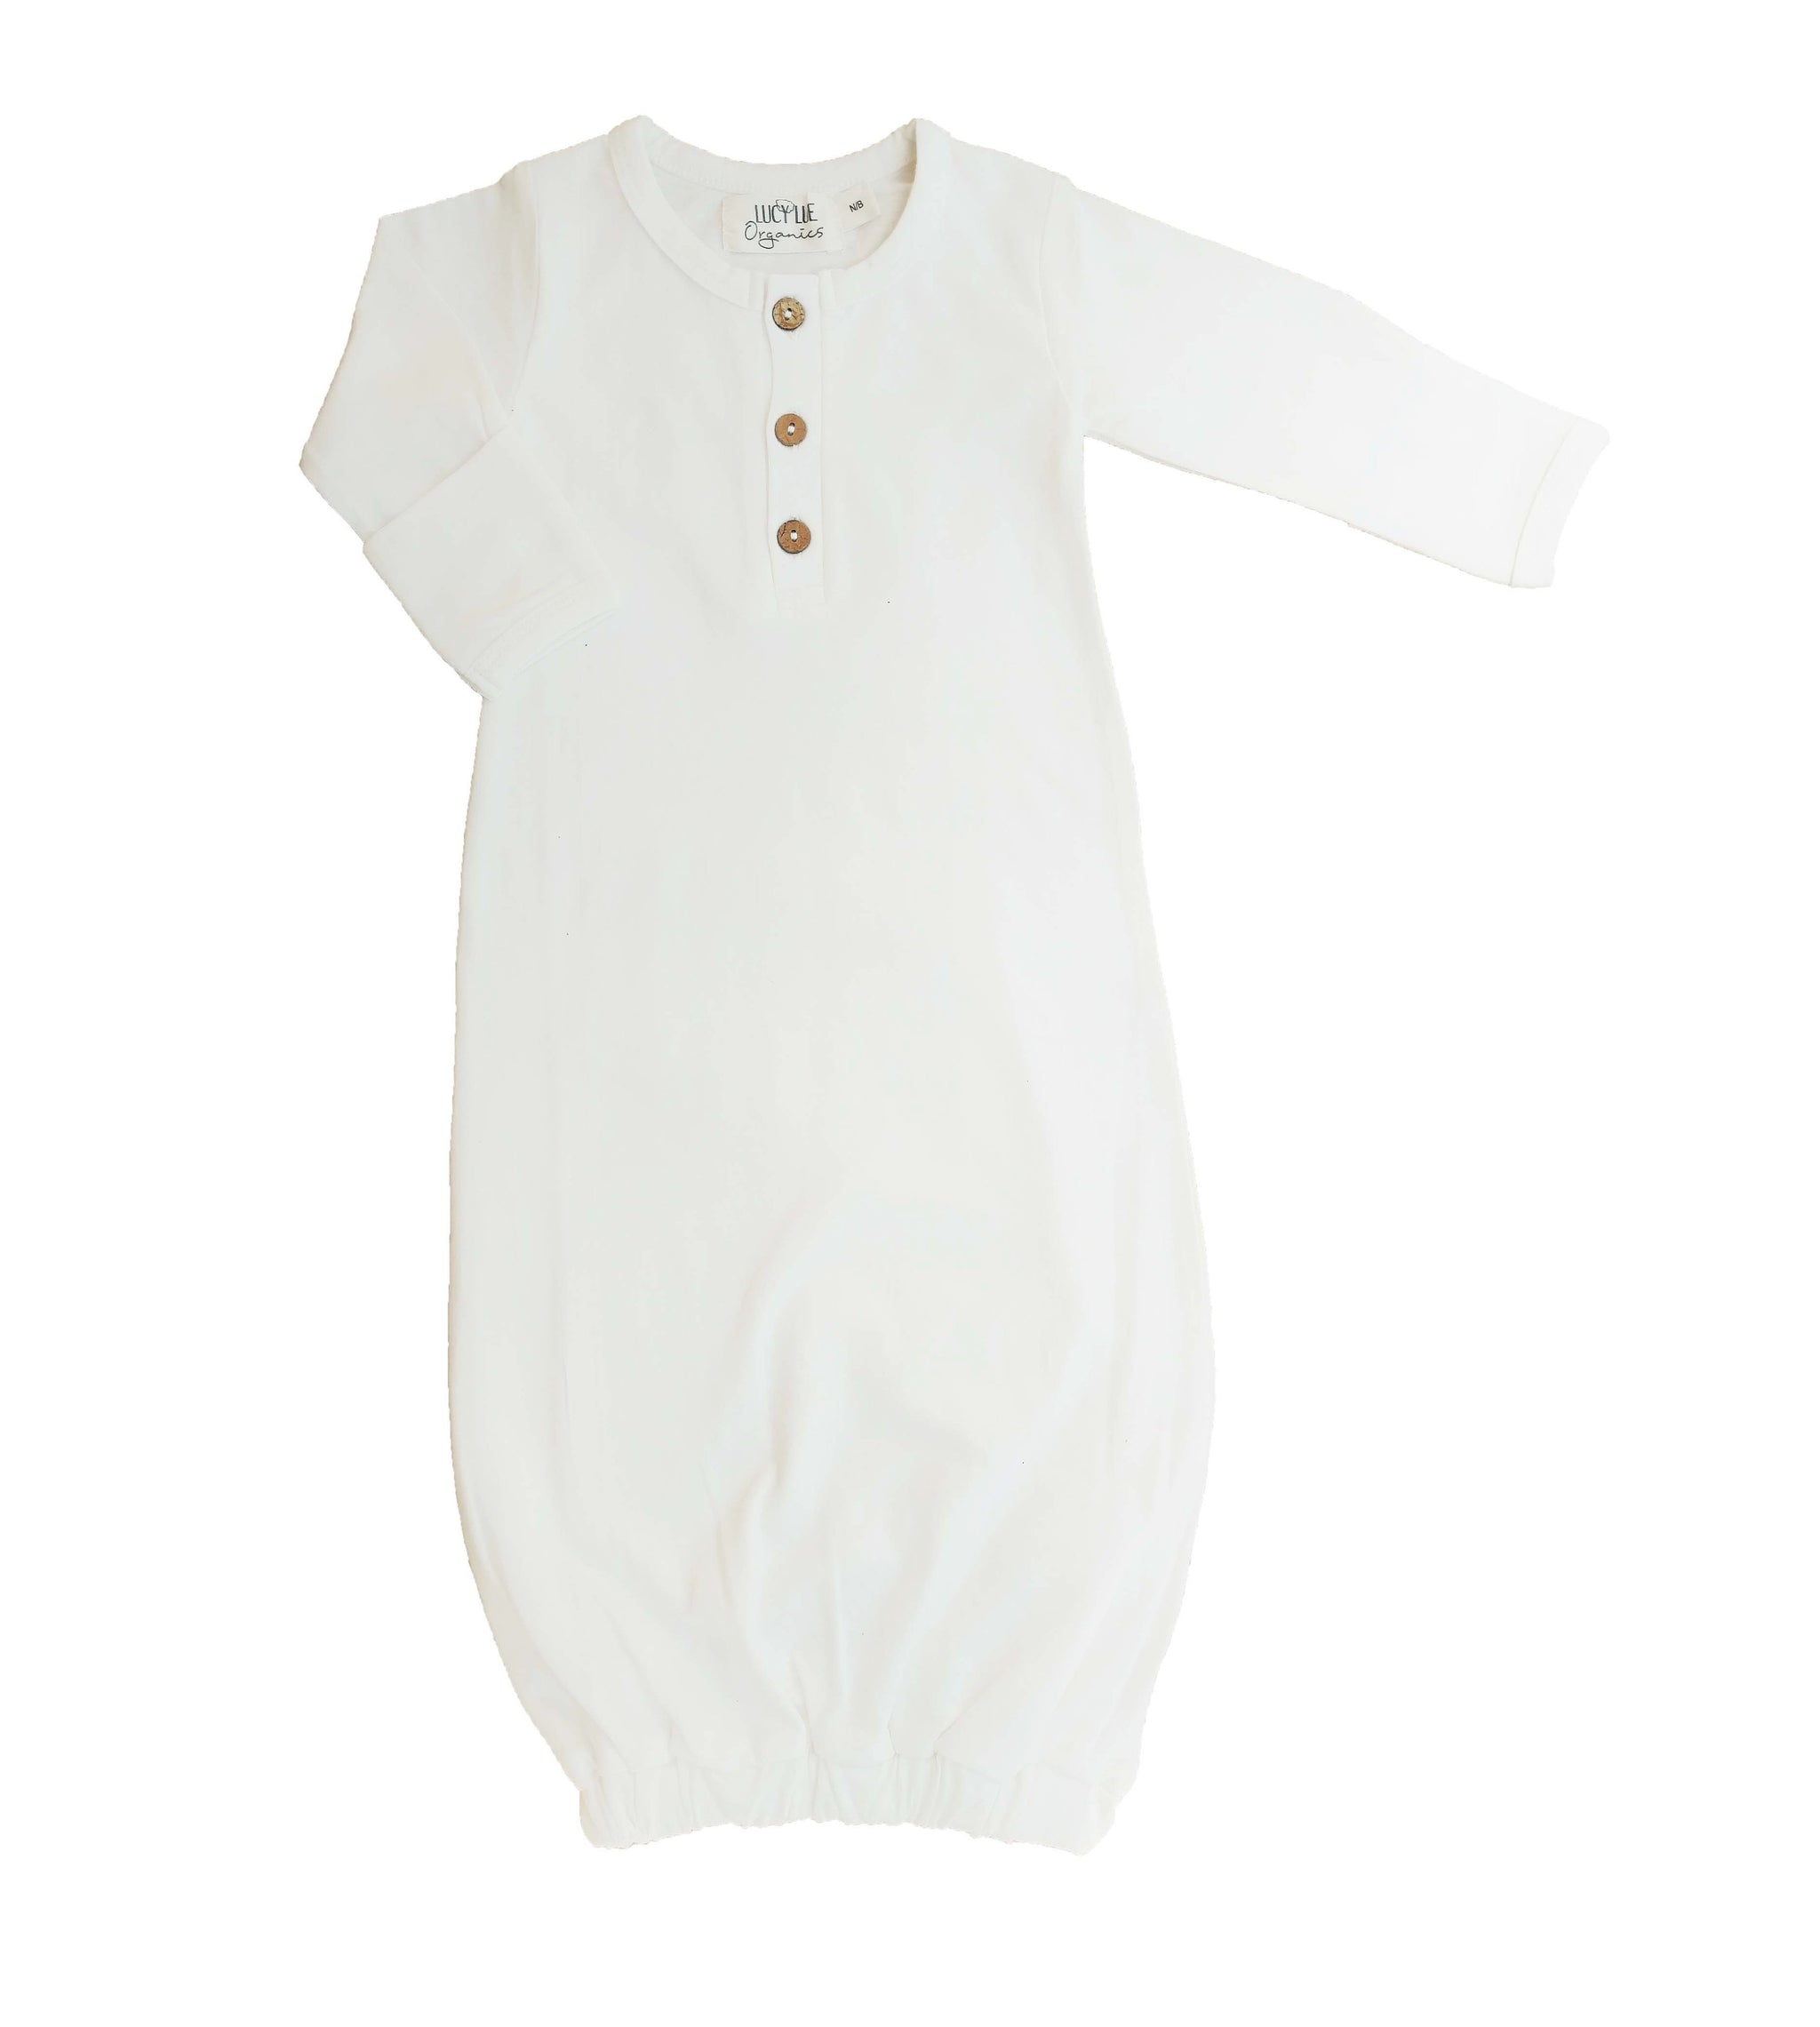 FINAL SALE!! OOPS BABY GOWN - IVORY – LUCY LUE ORGANICS